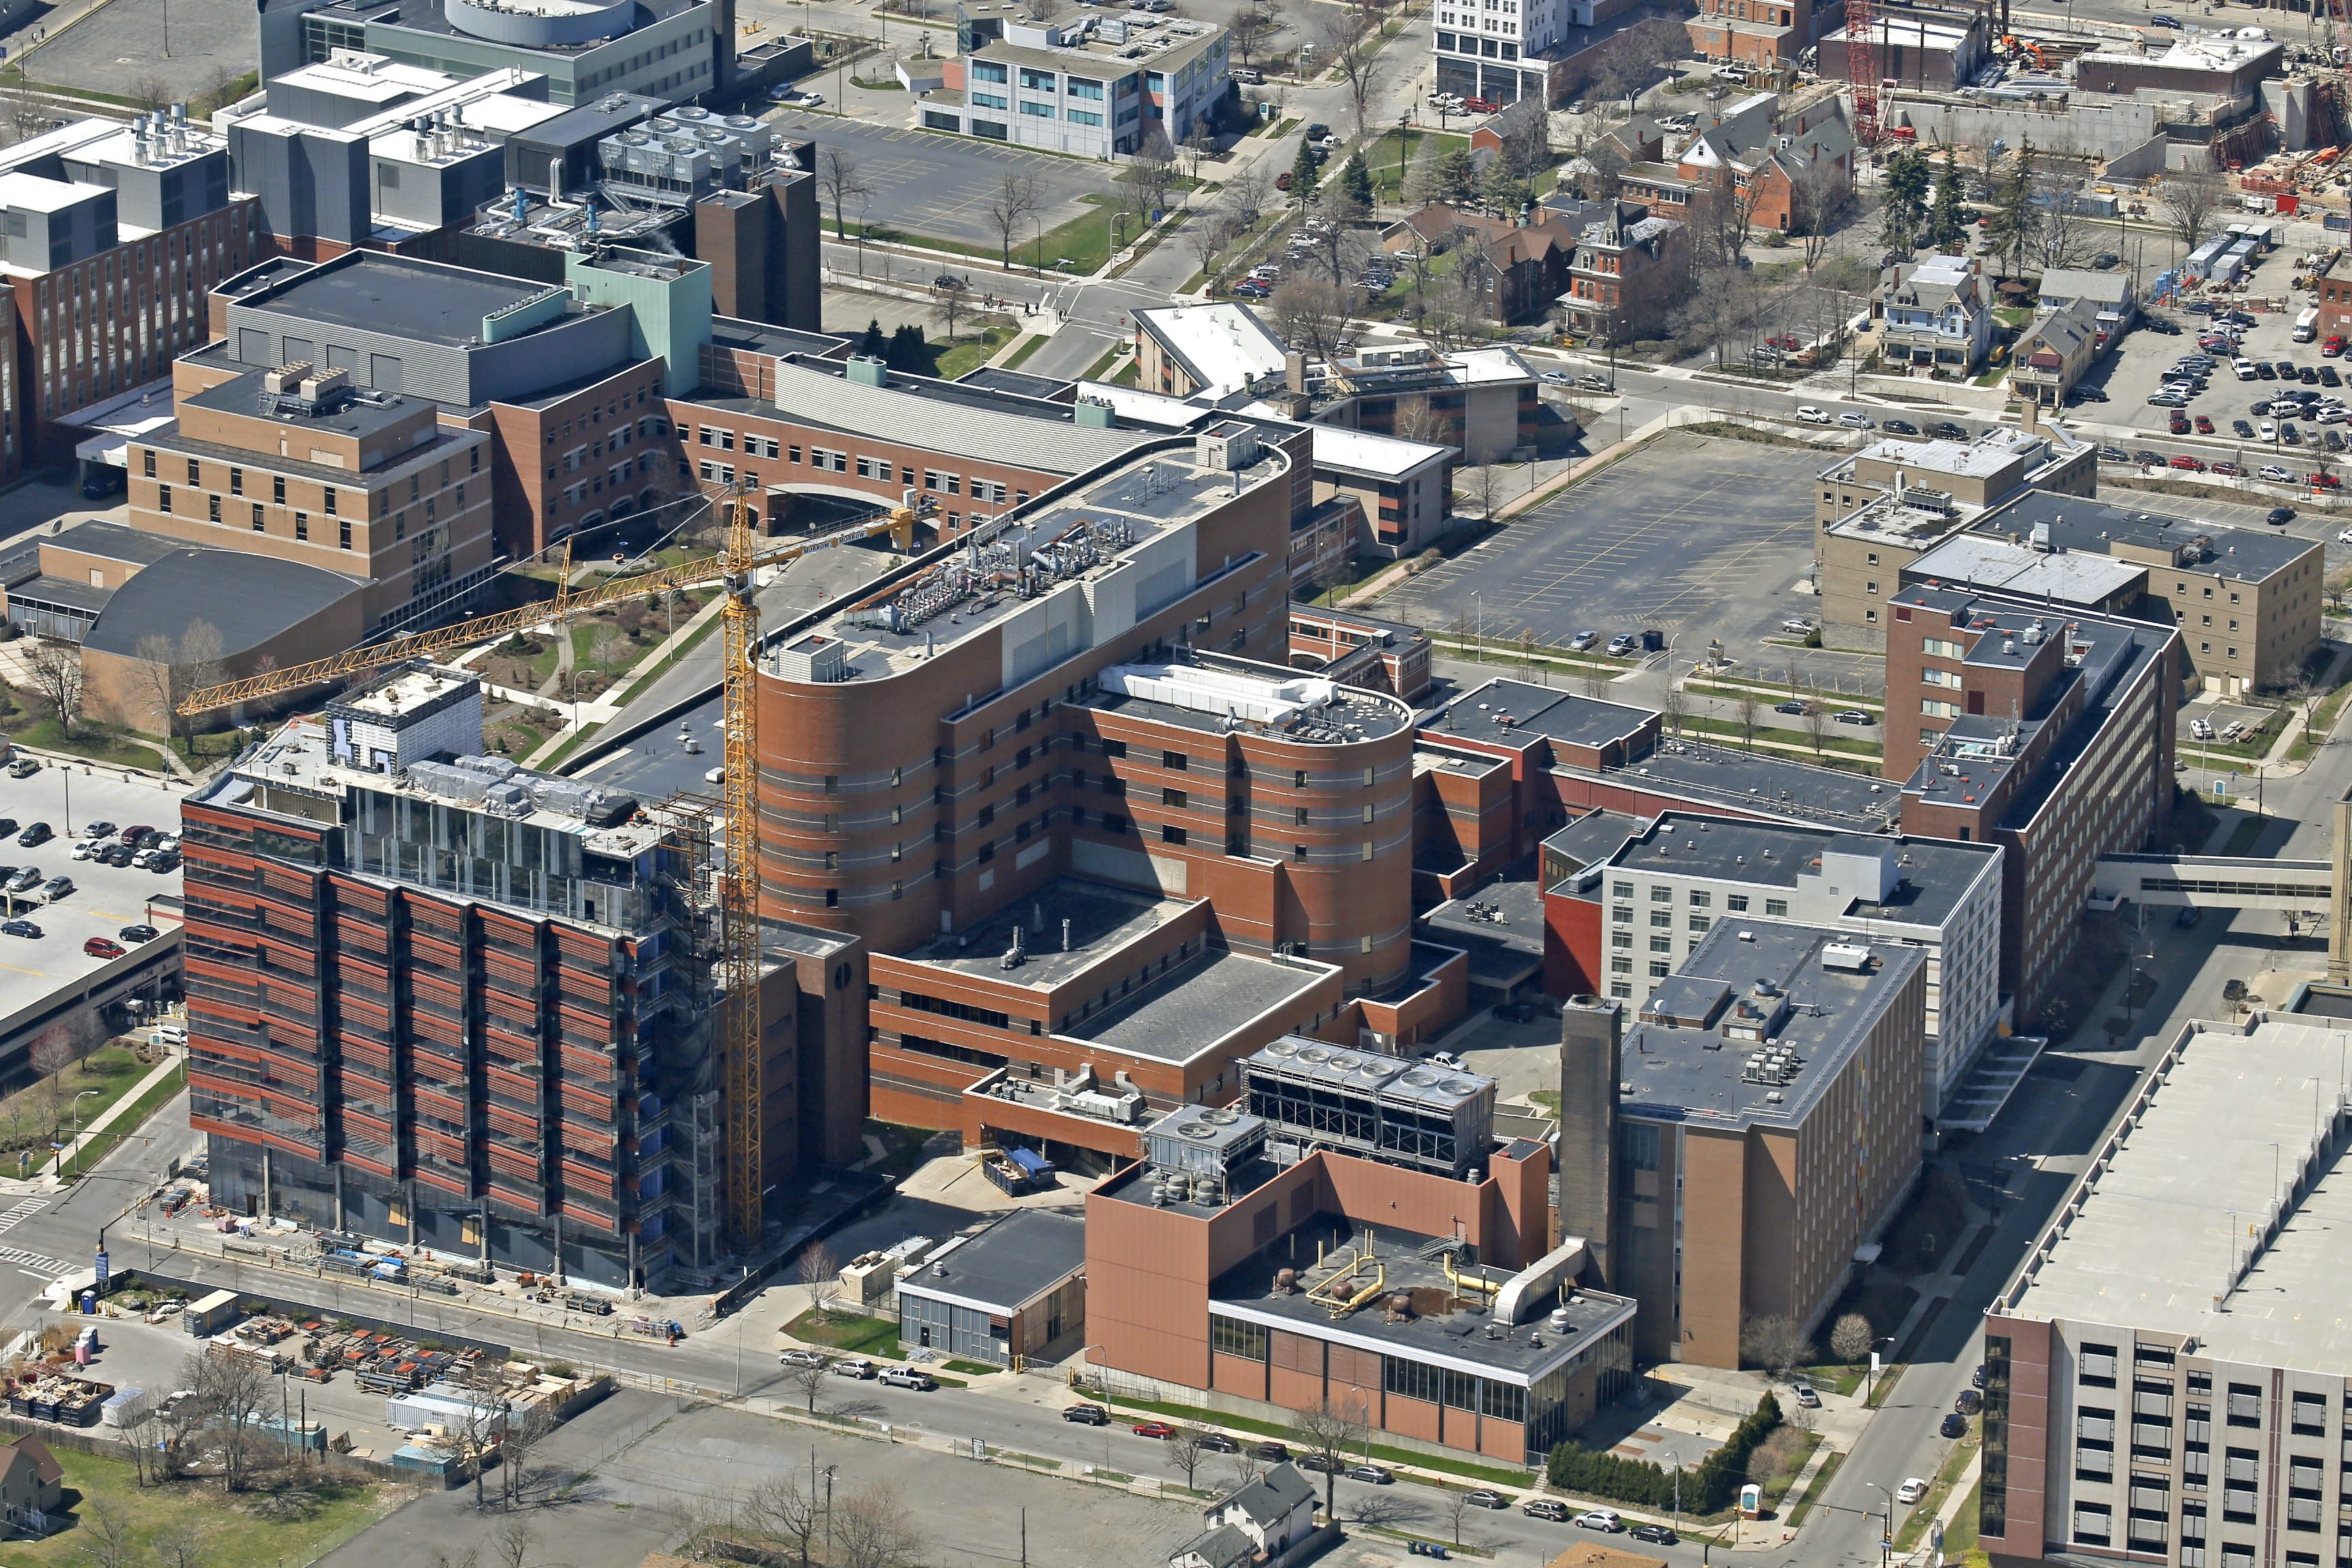 Aerial photograph of the Buffalo Niagara Medical Campus shows the Roswell Park Clinical Sciences Center at the bottom left. (Robert Kirkham/Buffalo News)